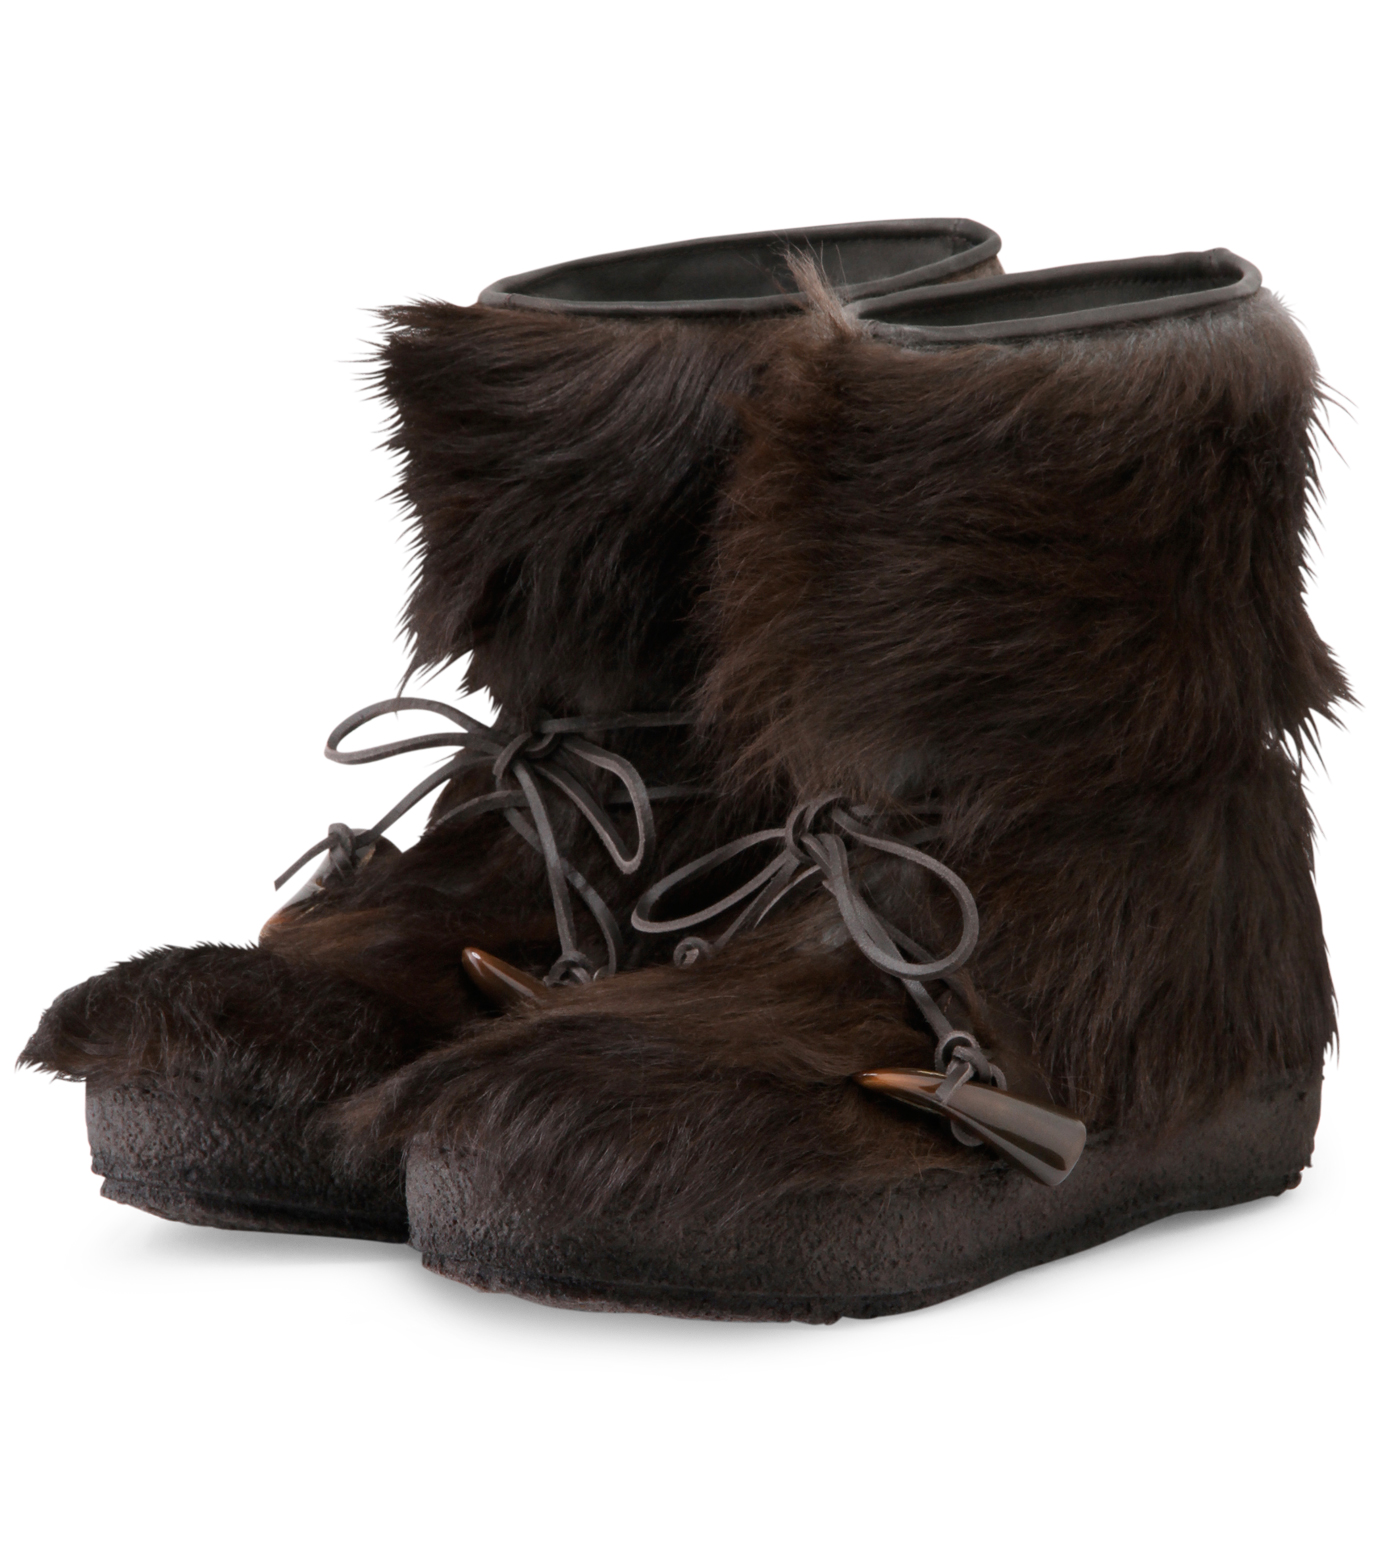 Moncler Gamme Bleu(モンクレールガムブルー)のBoots-BROWN-O0446-30-42 拡大詳細画像4